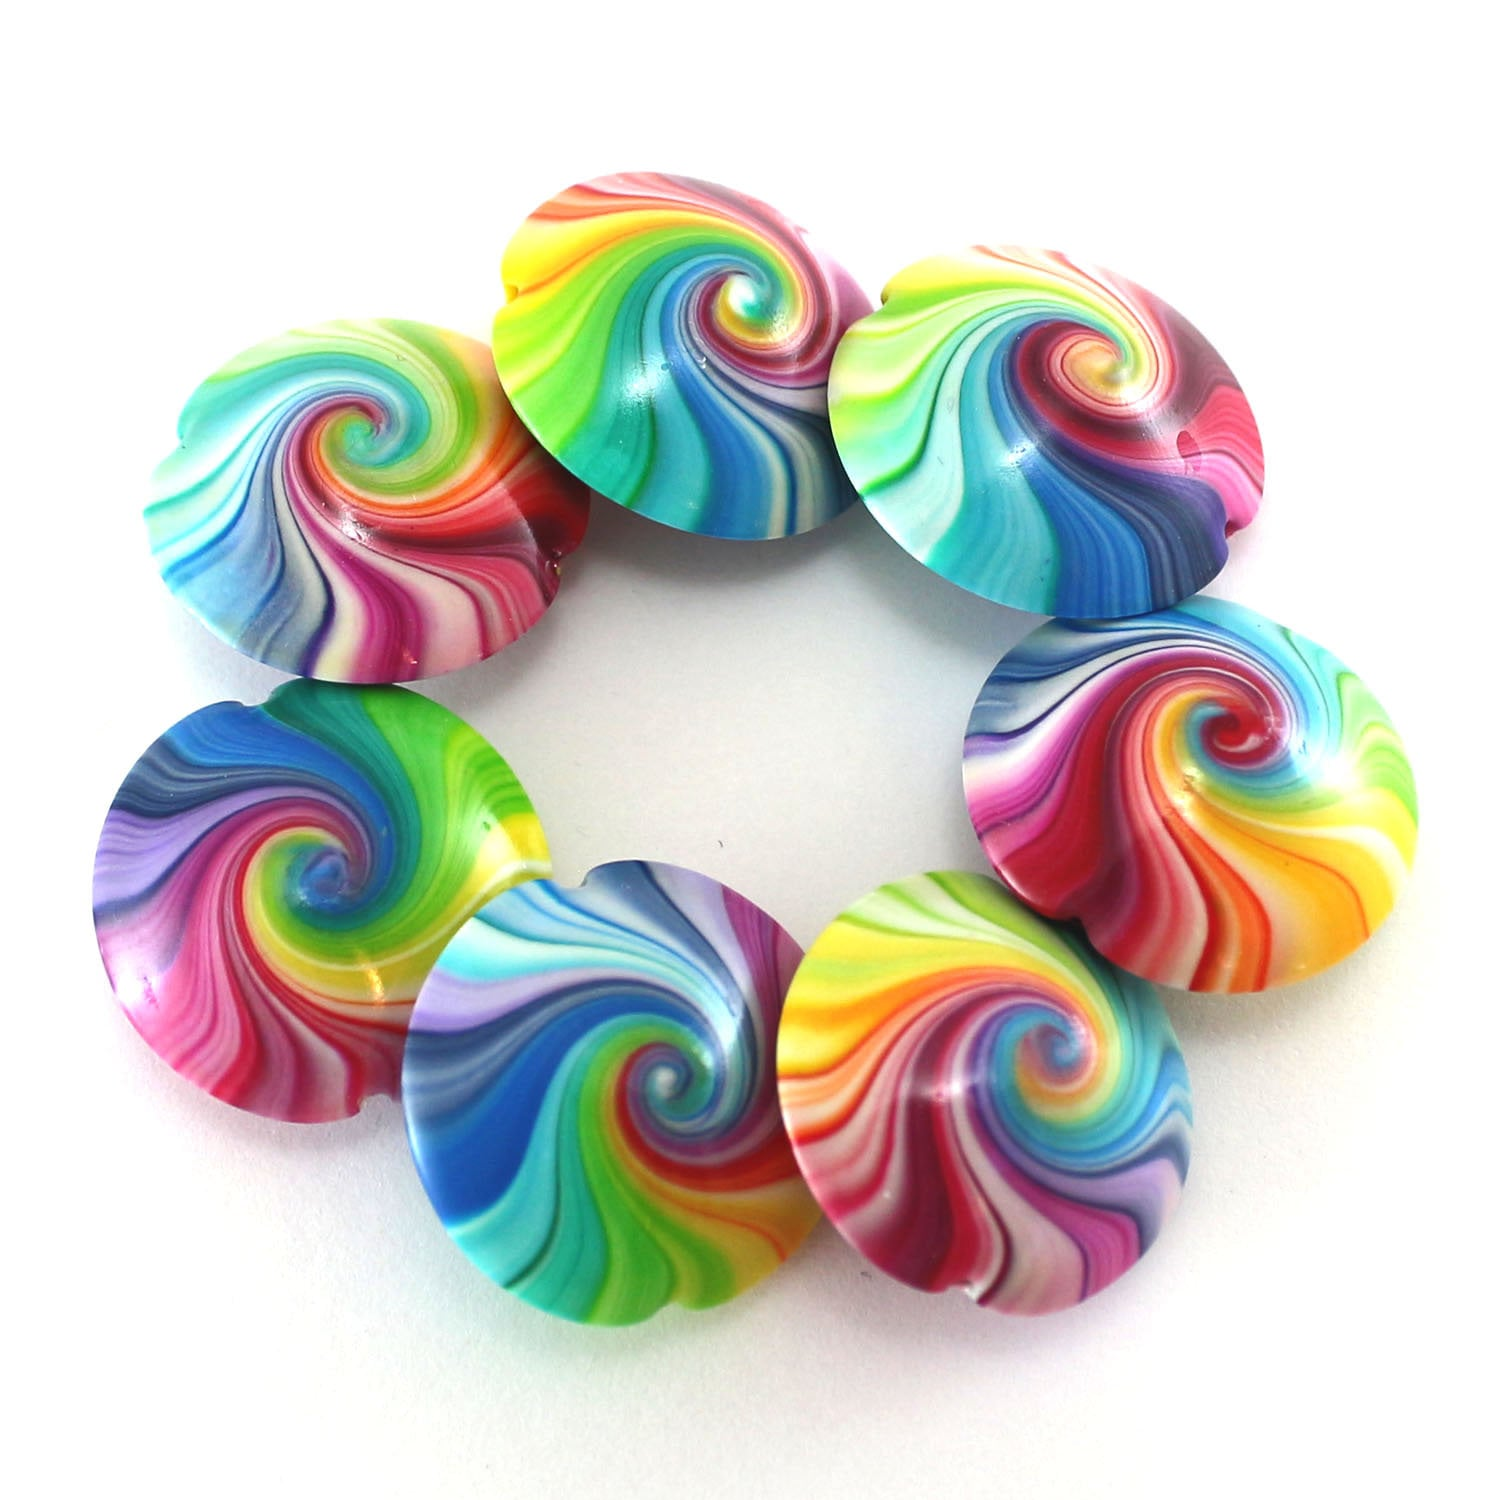 Colorful Swirl Lentil Beads Polymer Clay Beads In Rainbow